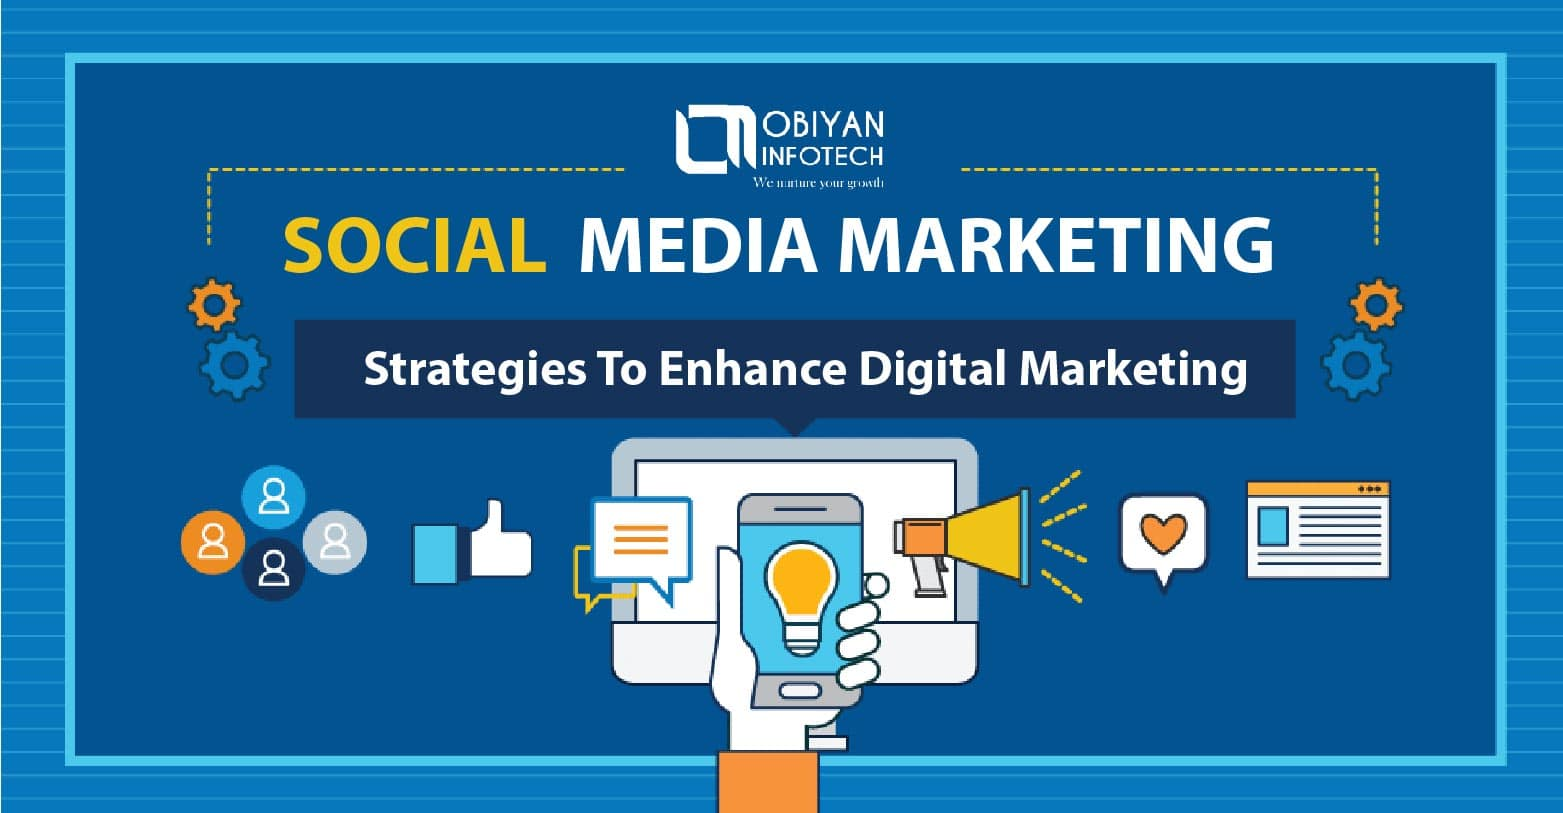 10 Social Media Marketing Strategies